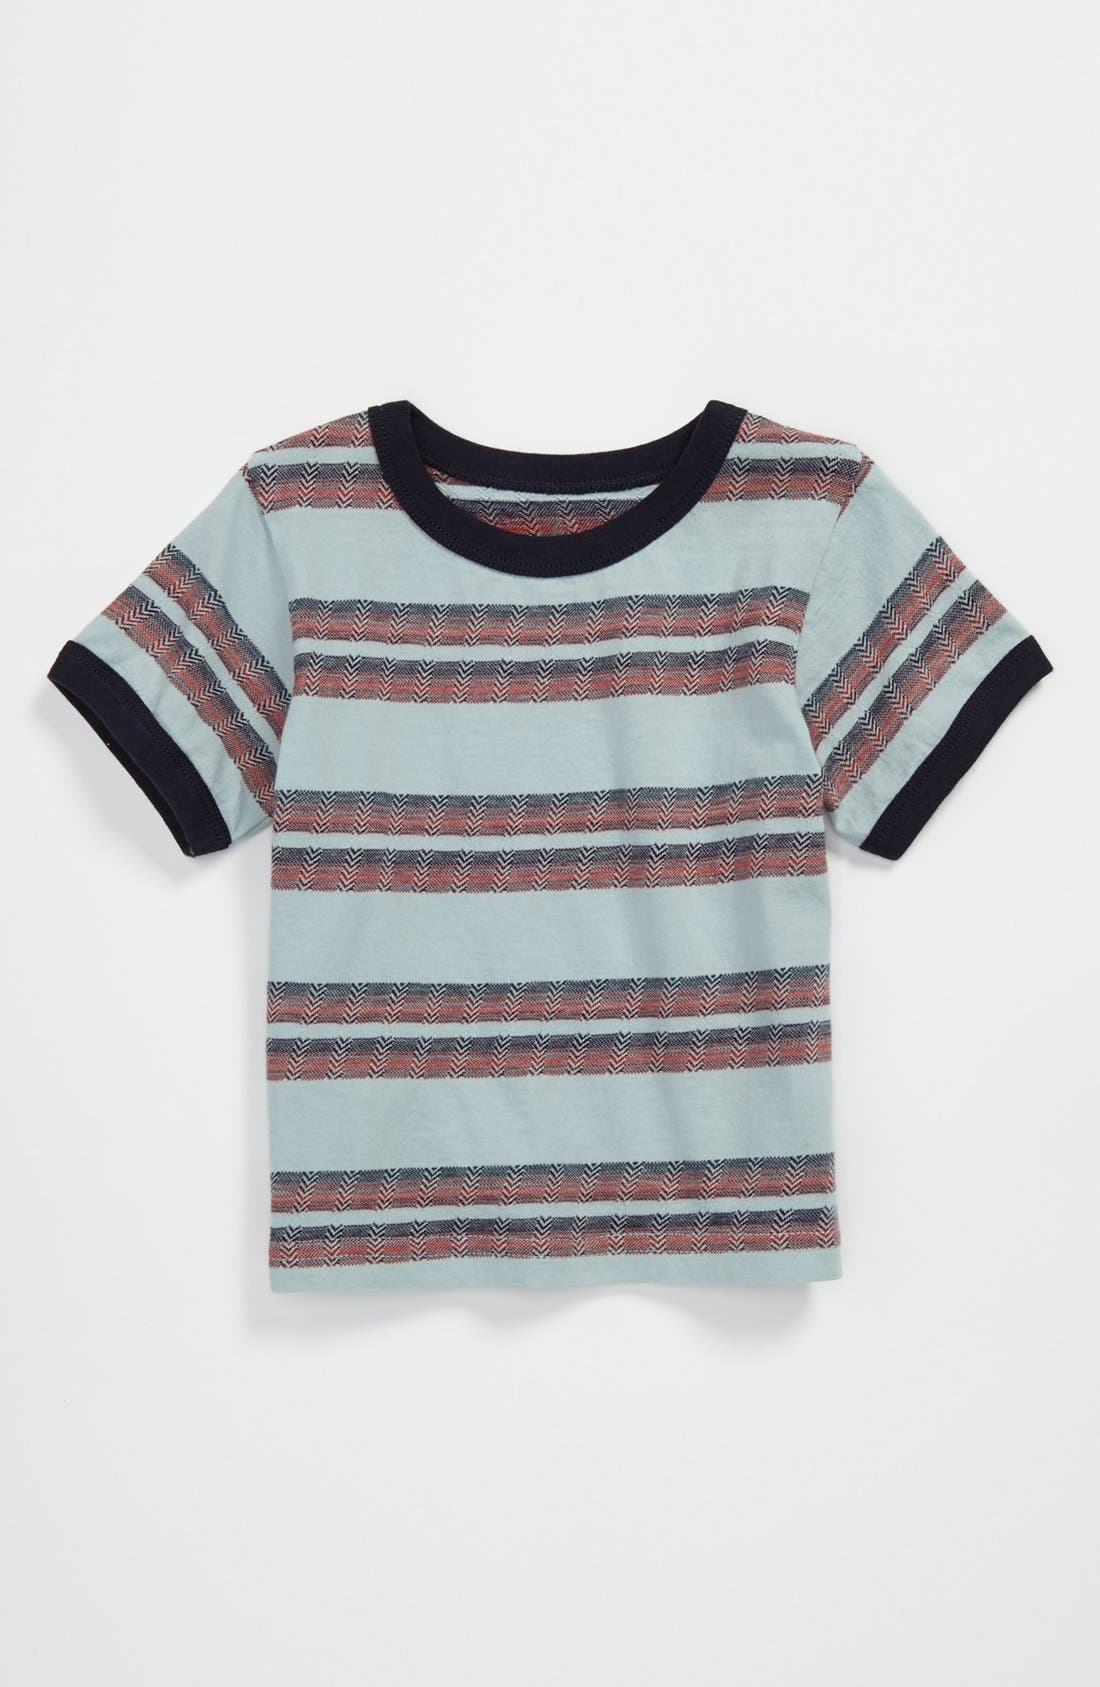 Alternate Image 1 Selected - Peek 'Mateo' T-Shirt (Baby)